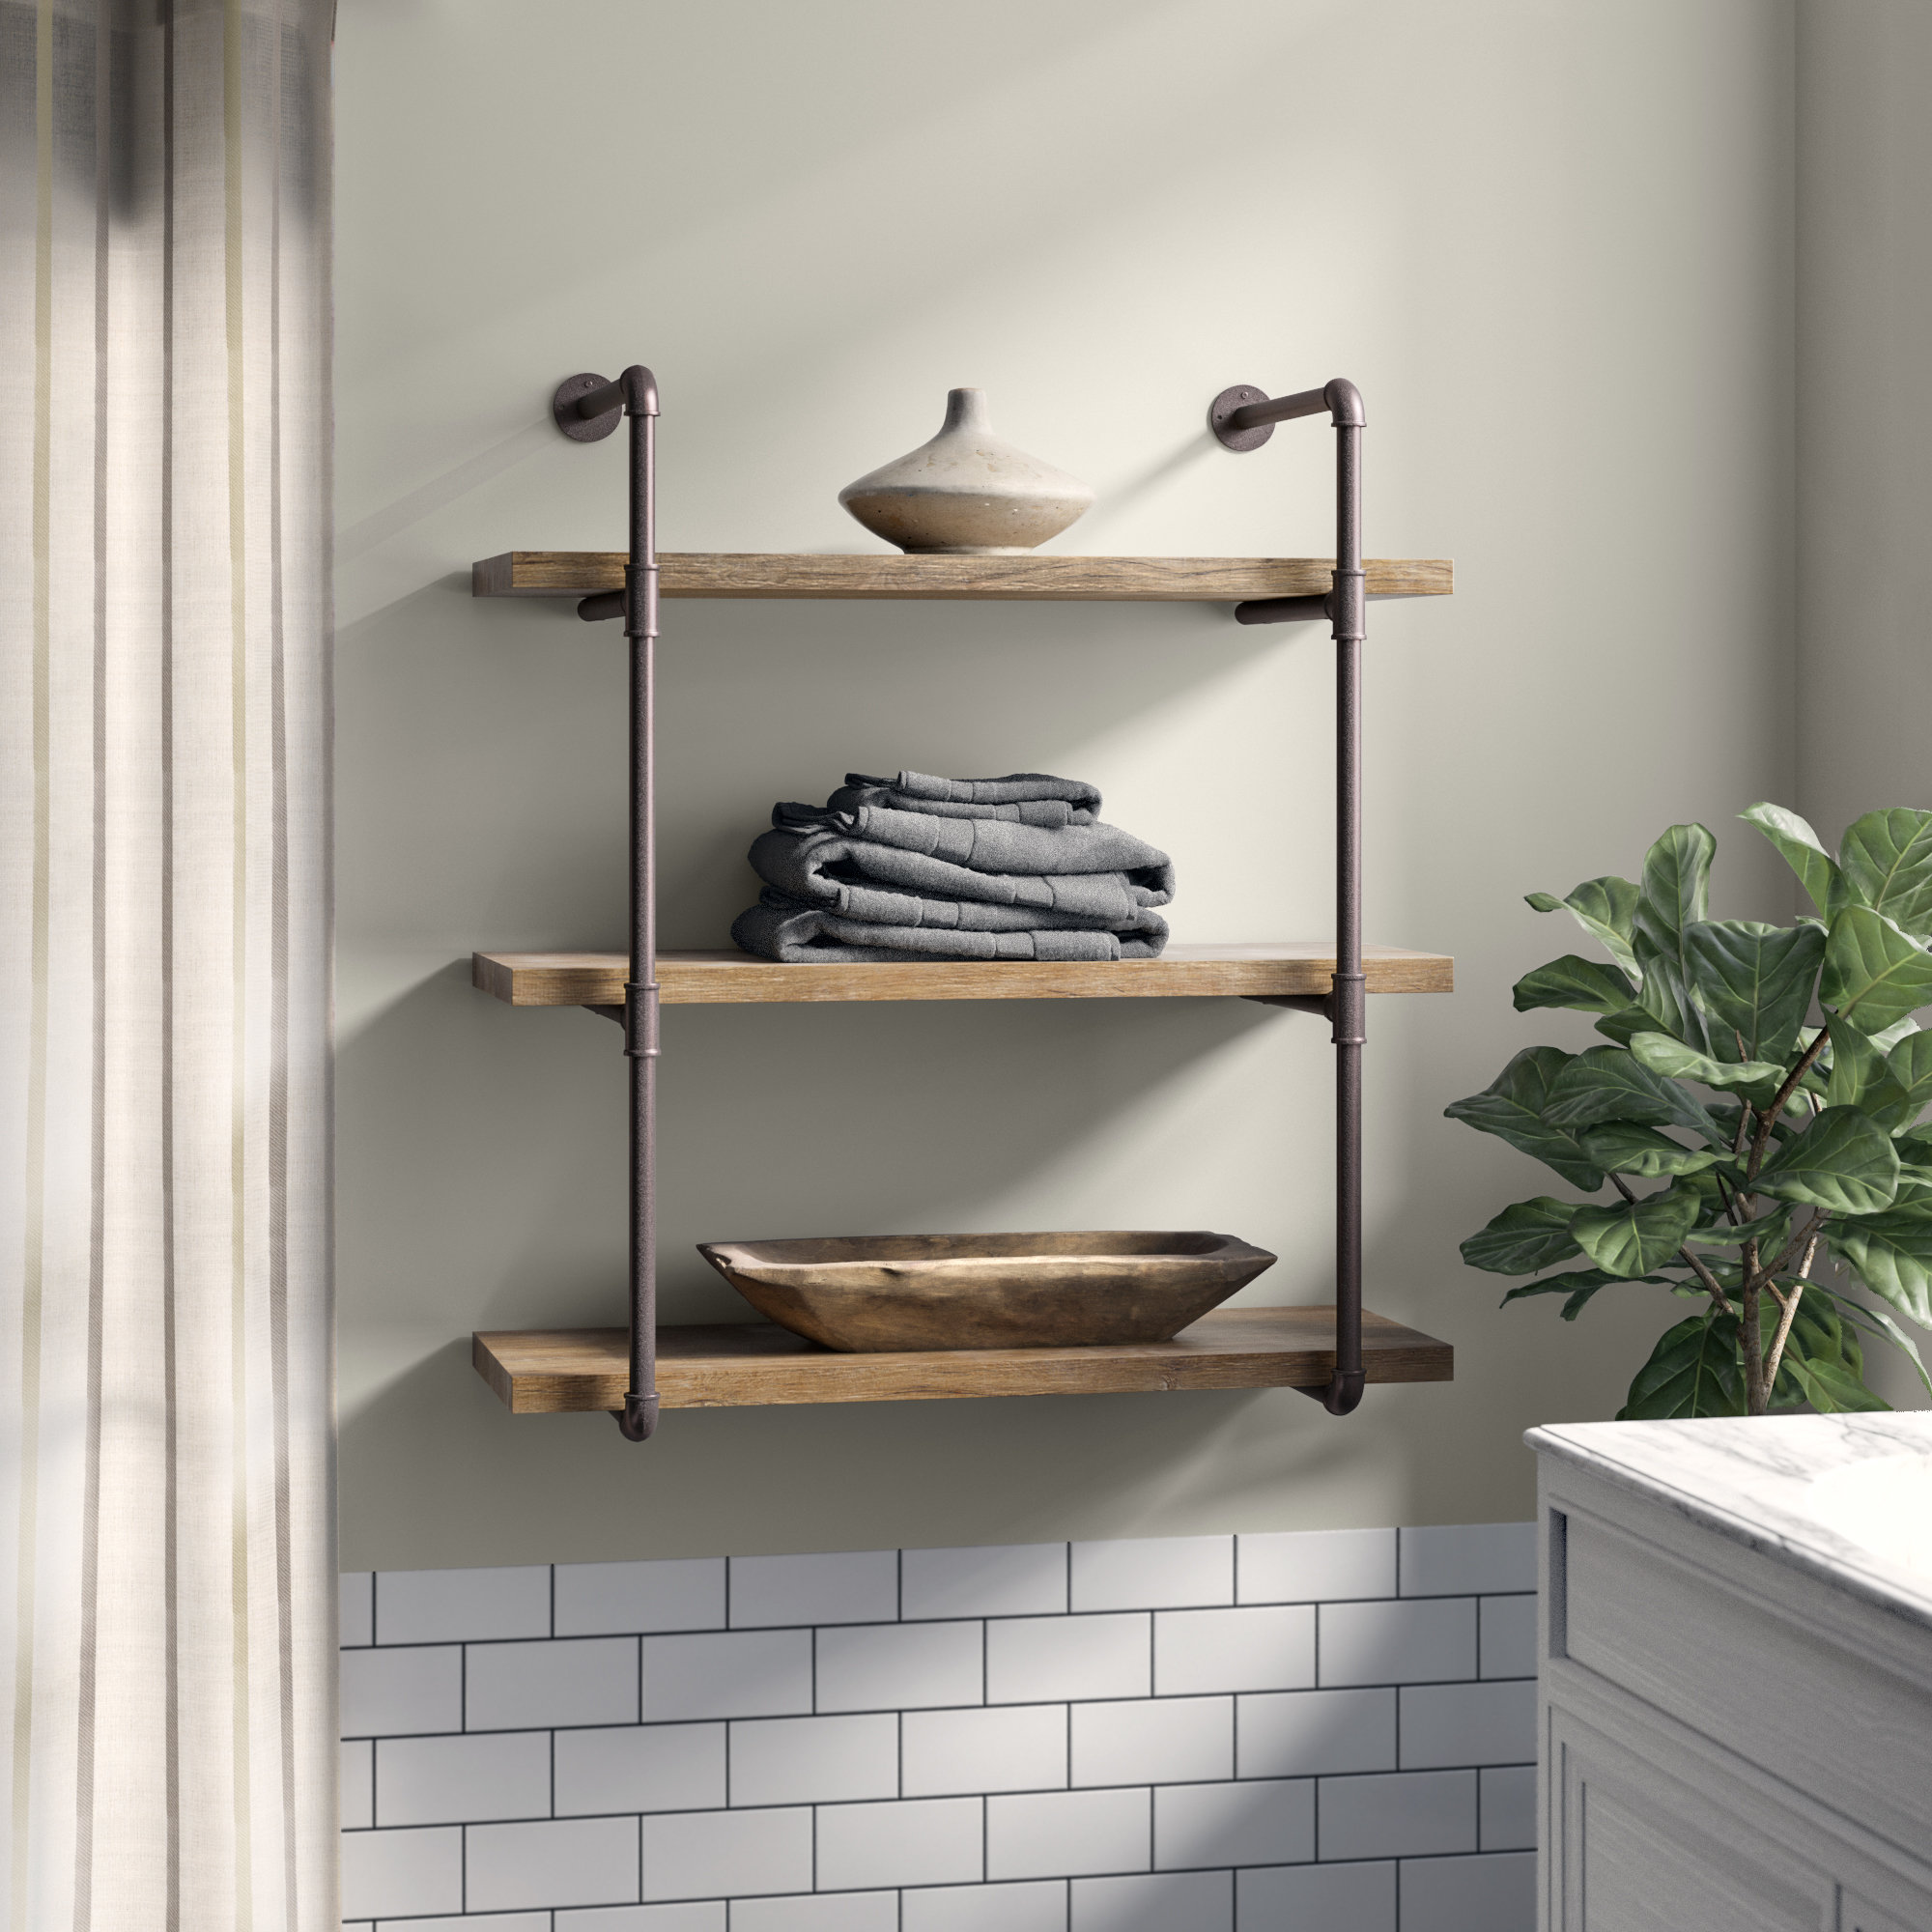 kennard tier wall shelf floating shelves with industrial pipes white tree coat rack closet system installation wood systems mounted bookcase fireplace mantel free standing metal